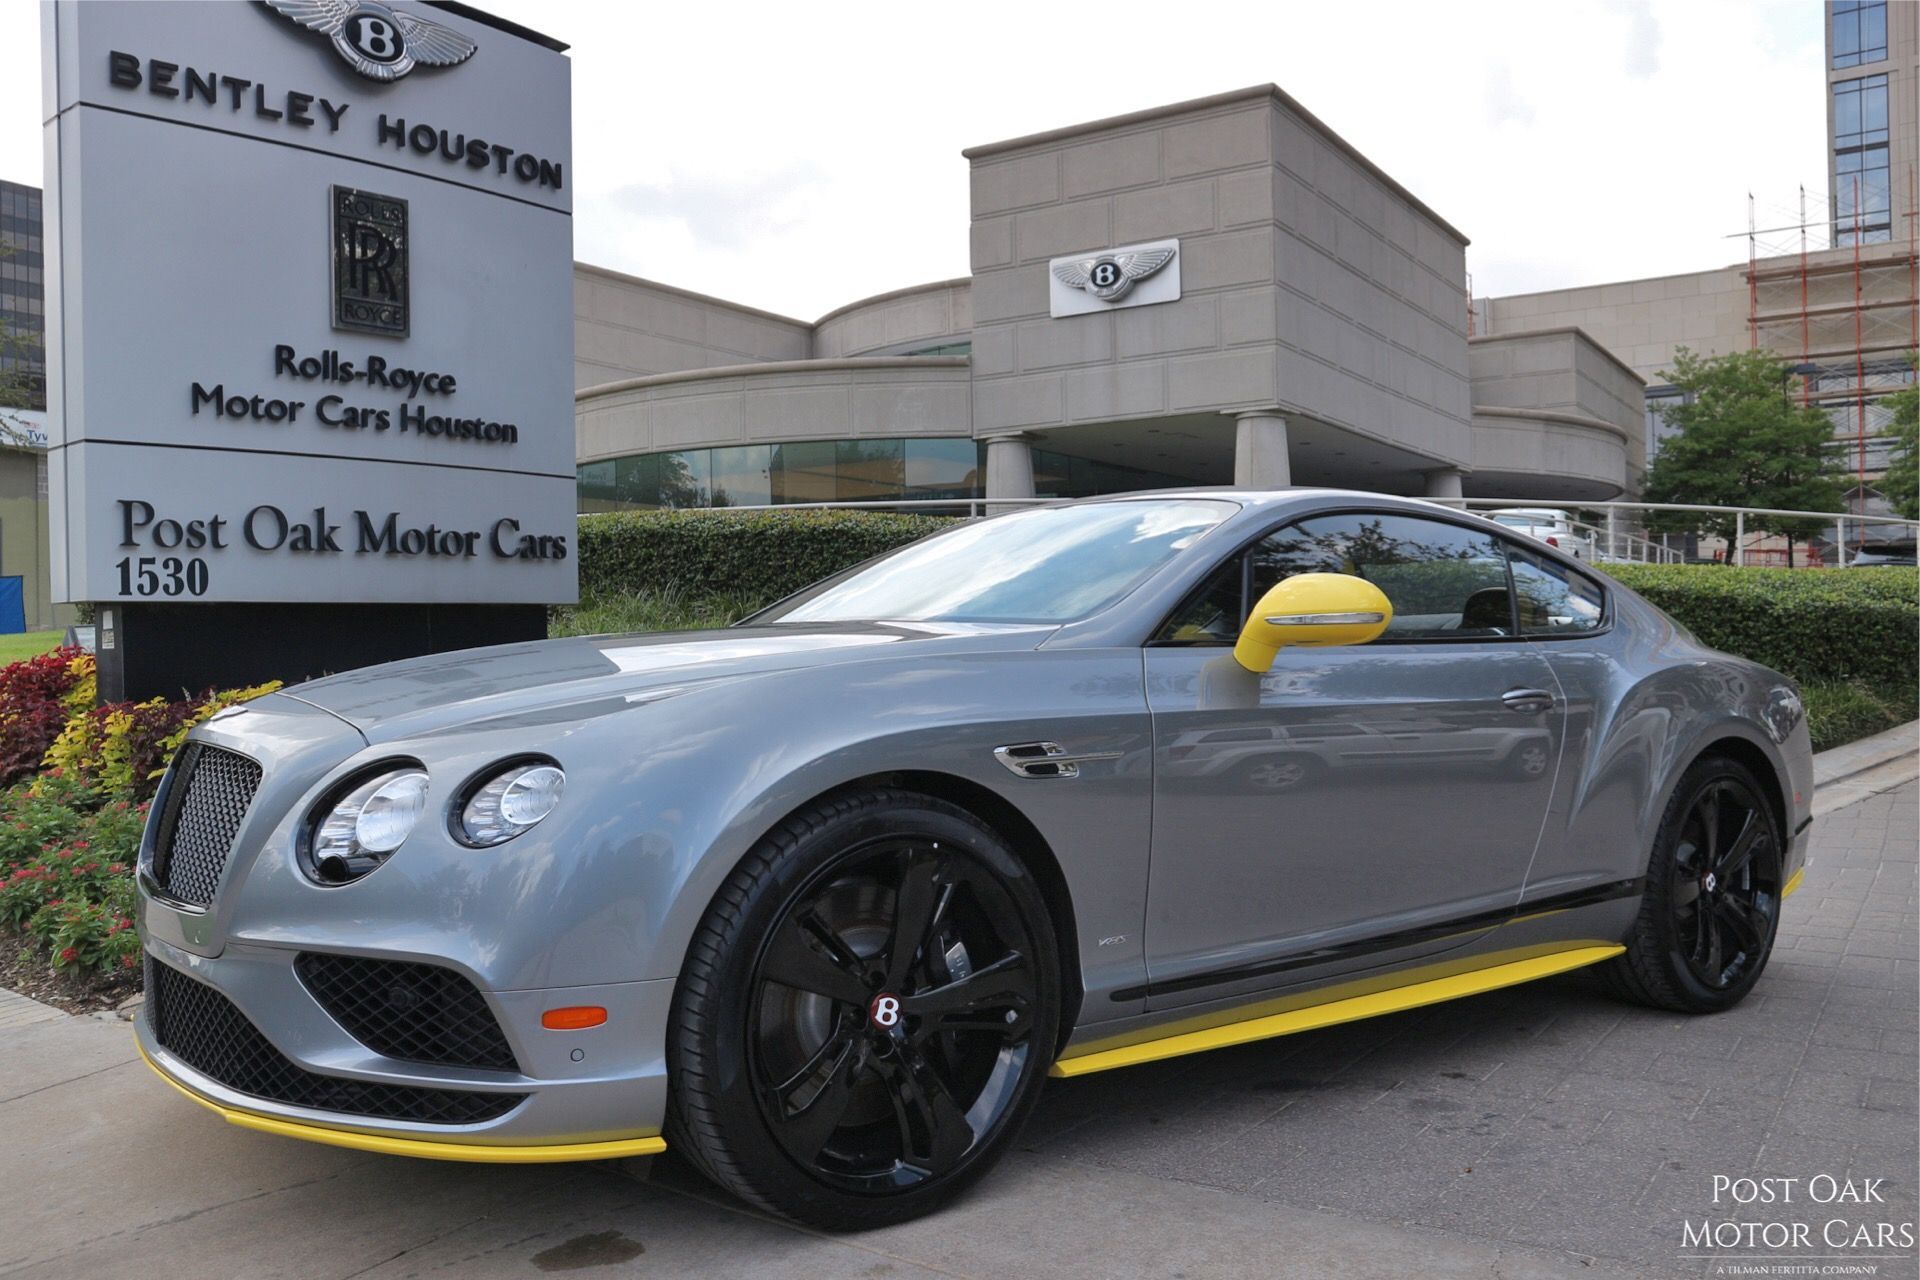 of orleans requirements new com sports houston exotic car awesome bentley codyjudy auto rental unique